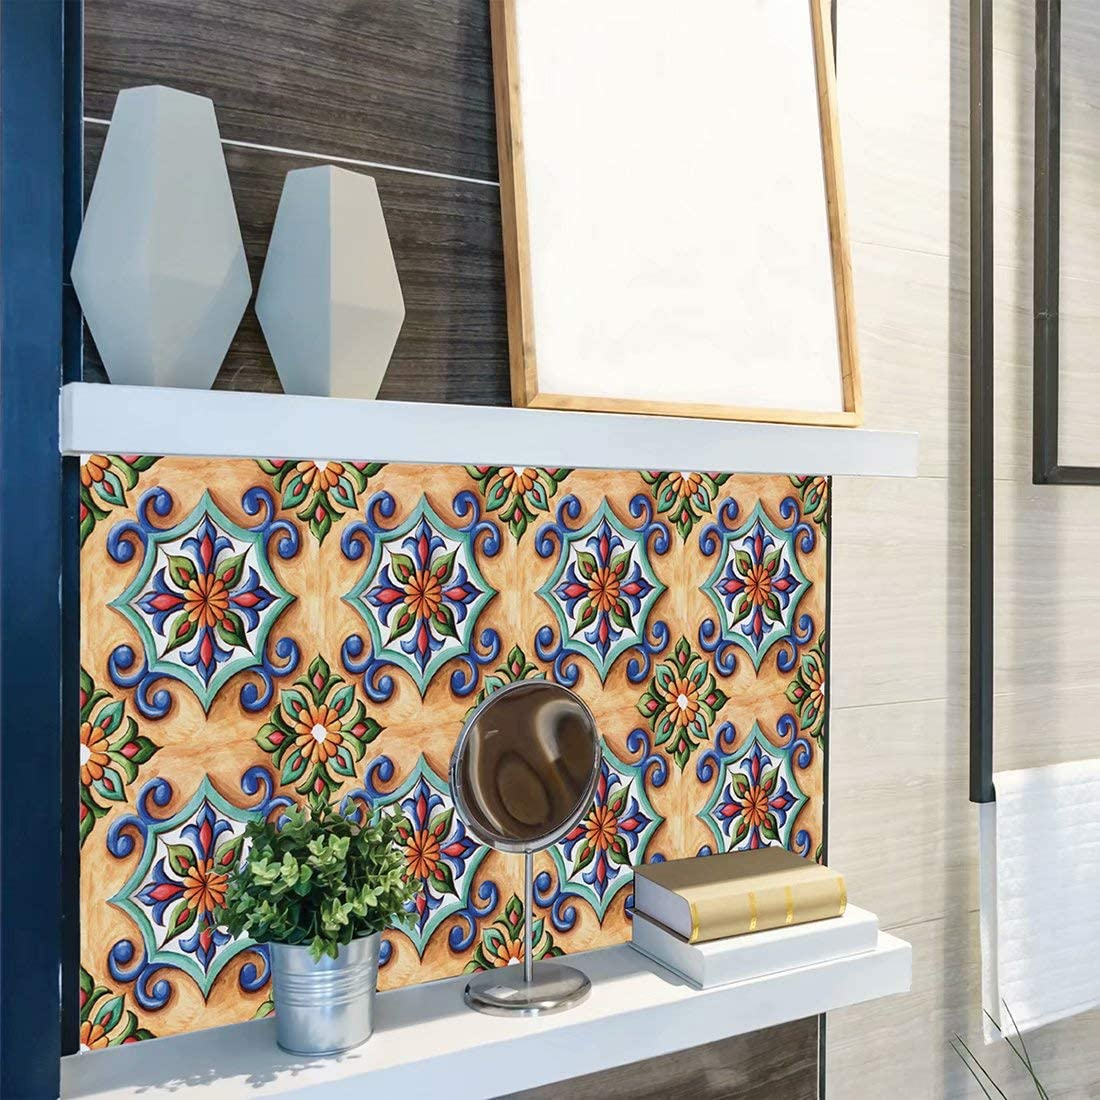 Home Decals Wall Tiles DIY Stickers Peel and Stick Backsplash for Kitchen//Bathroom in Moroccan Portuguese Mexican Talavera Design Pack of 6